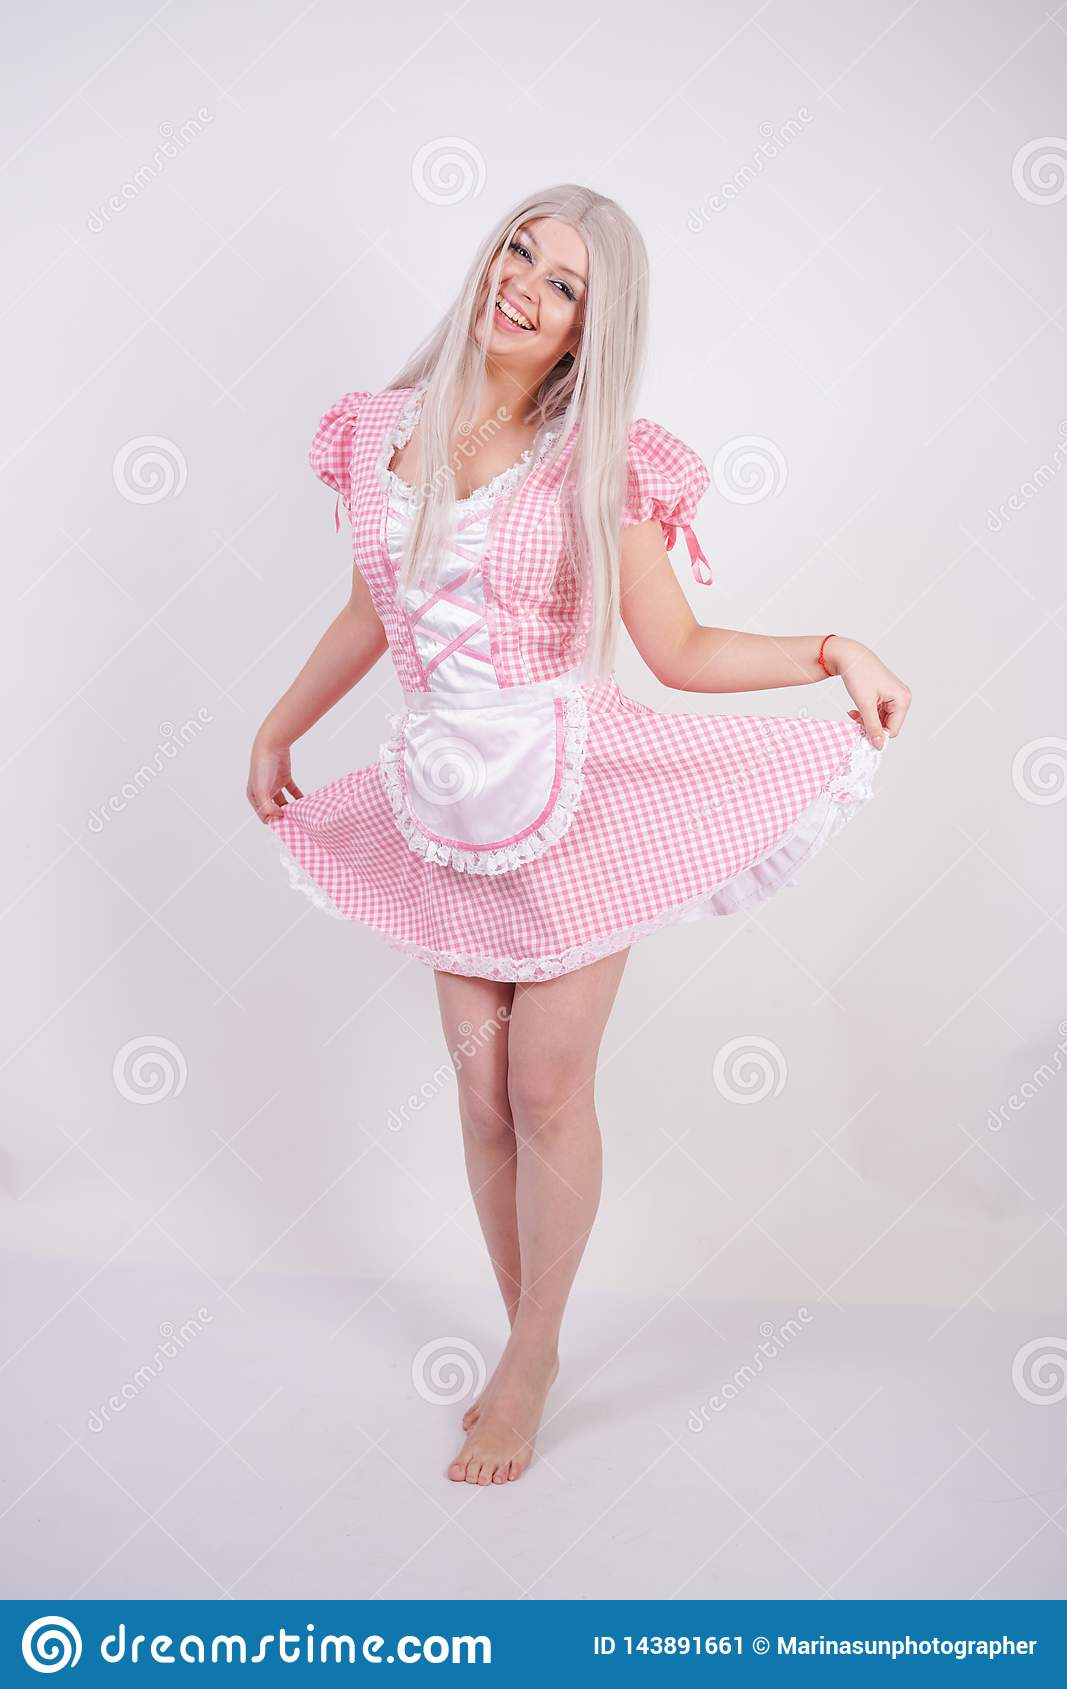 Cute young caucasian teen girl in pink plaid Bavarian dress with apron posing on white Studio solid background